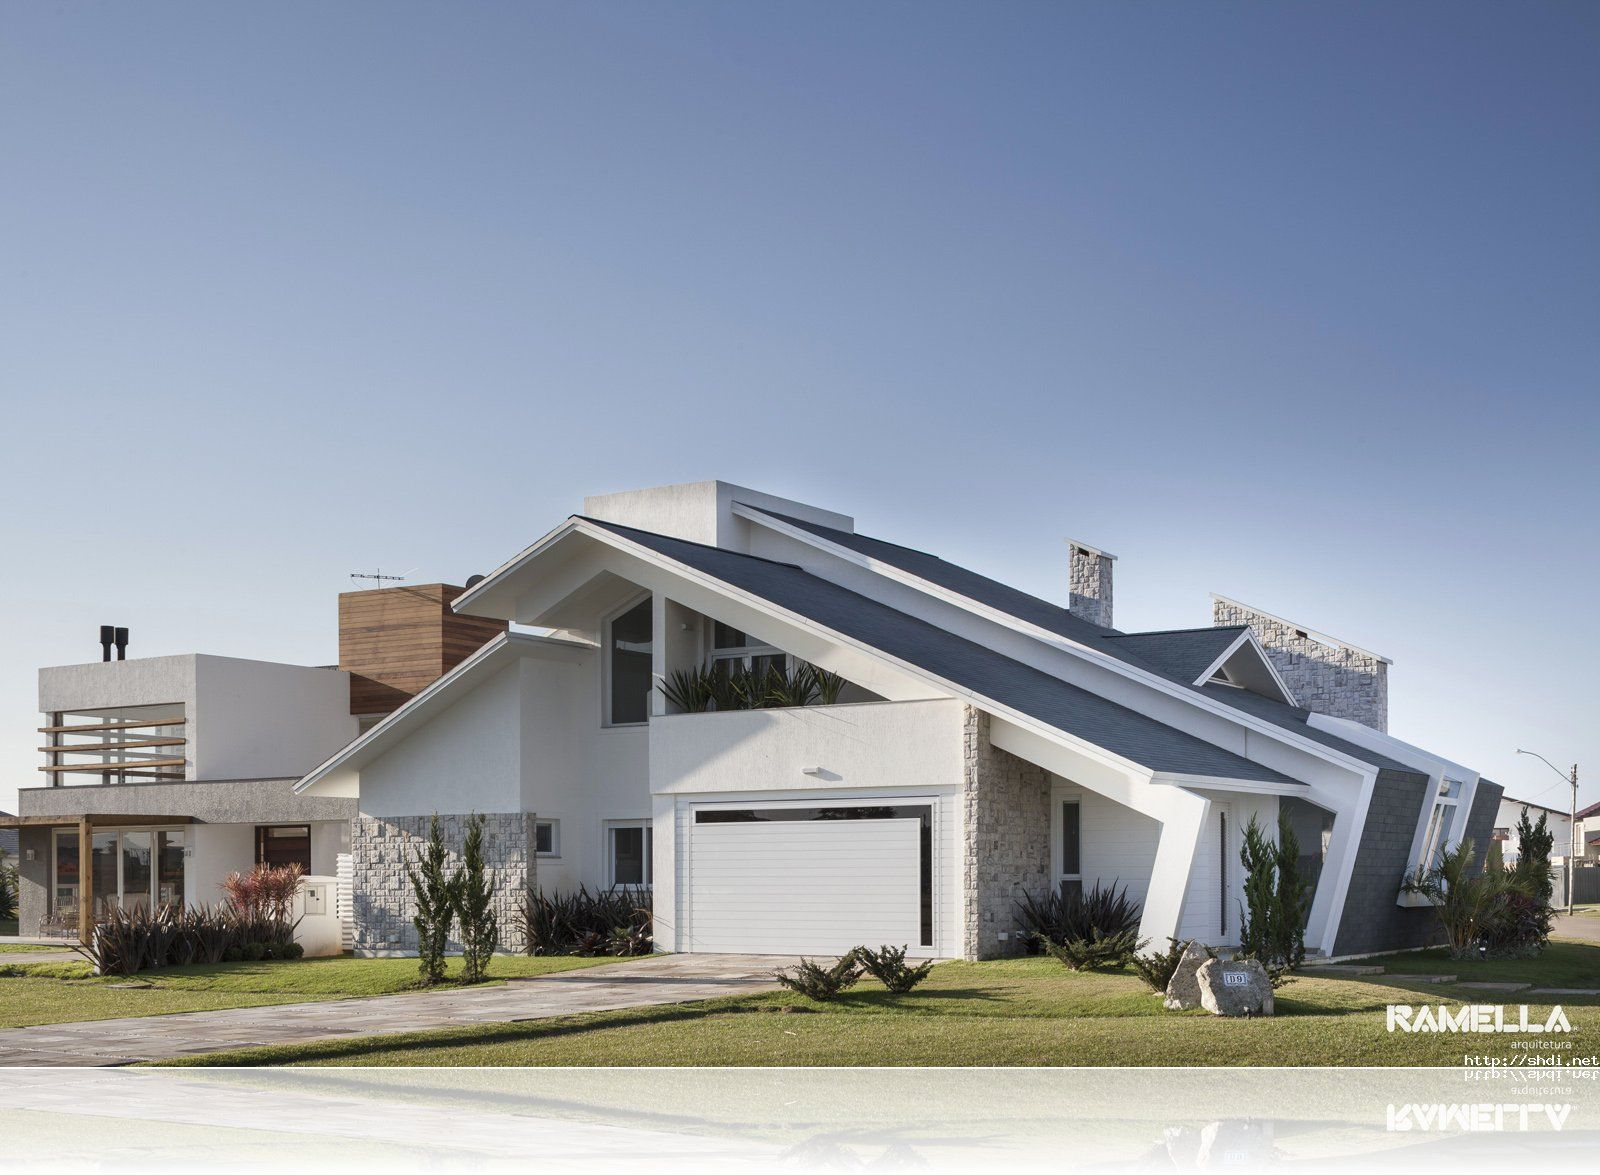 Unique Roof Designs Simple Home Design Ideas Inspirations Image Gallery Shingle House House Exterior House Design